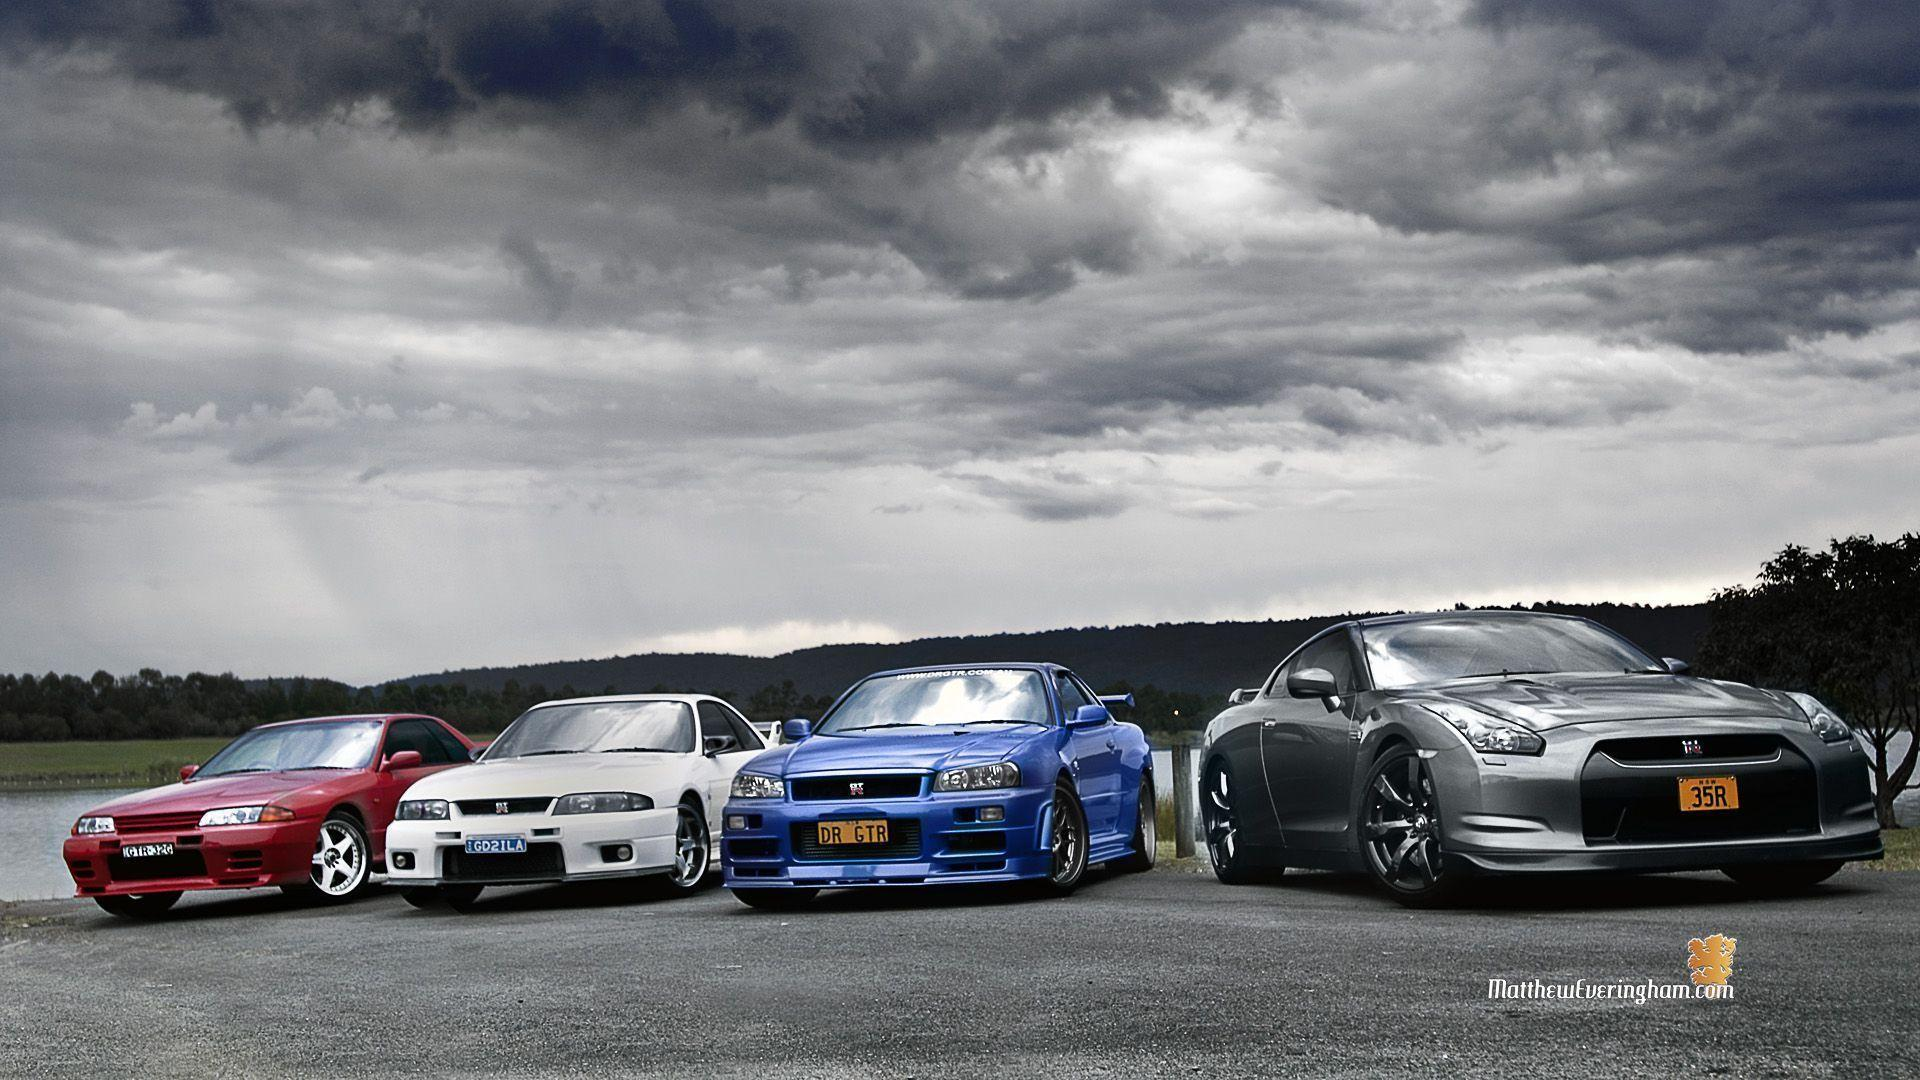 R34 Wallpapers Group